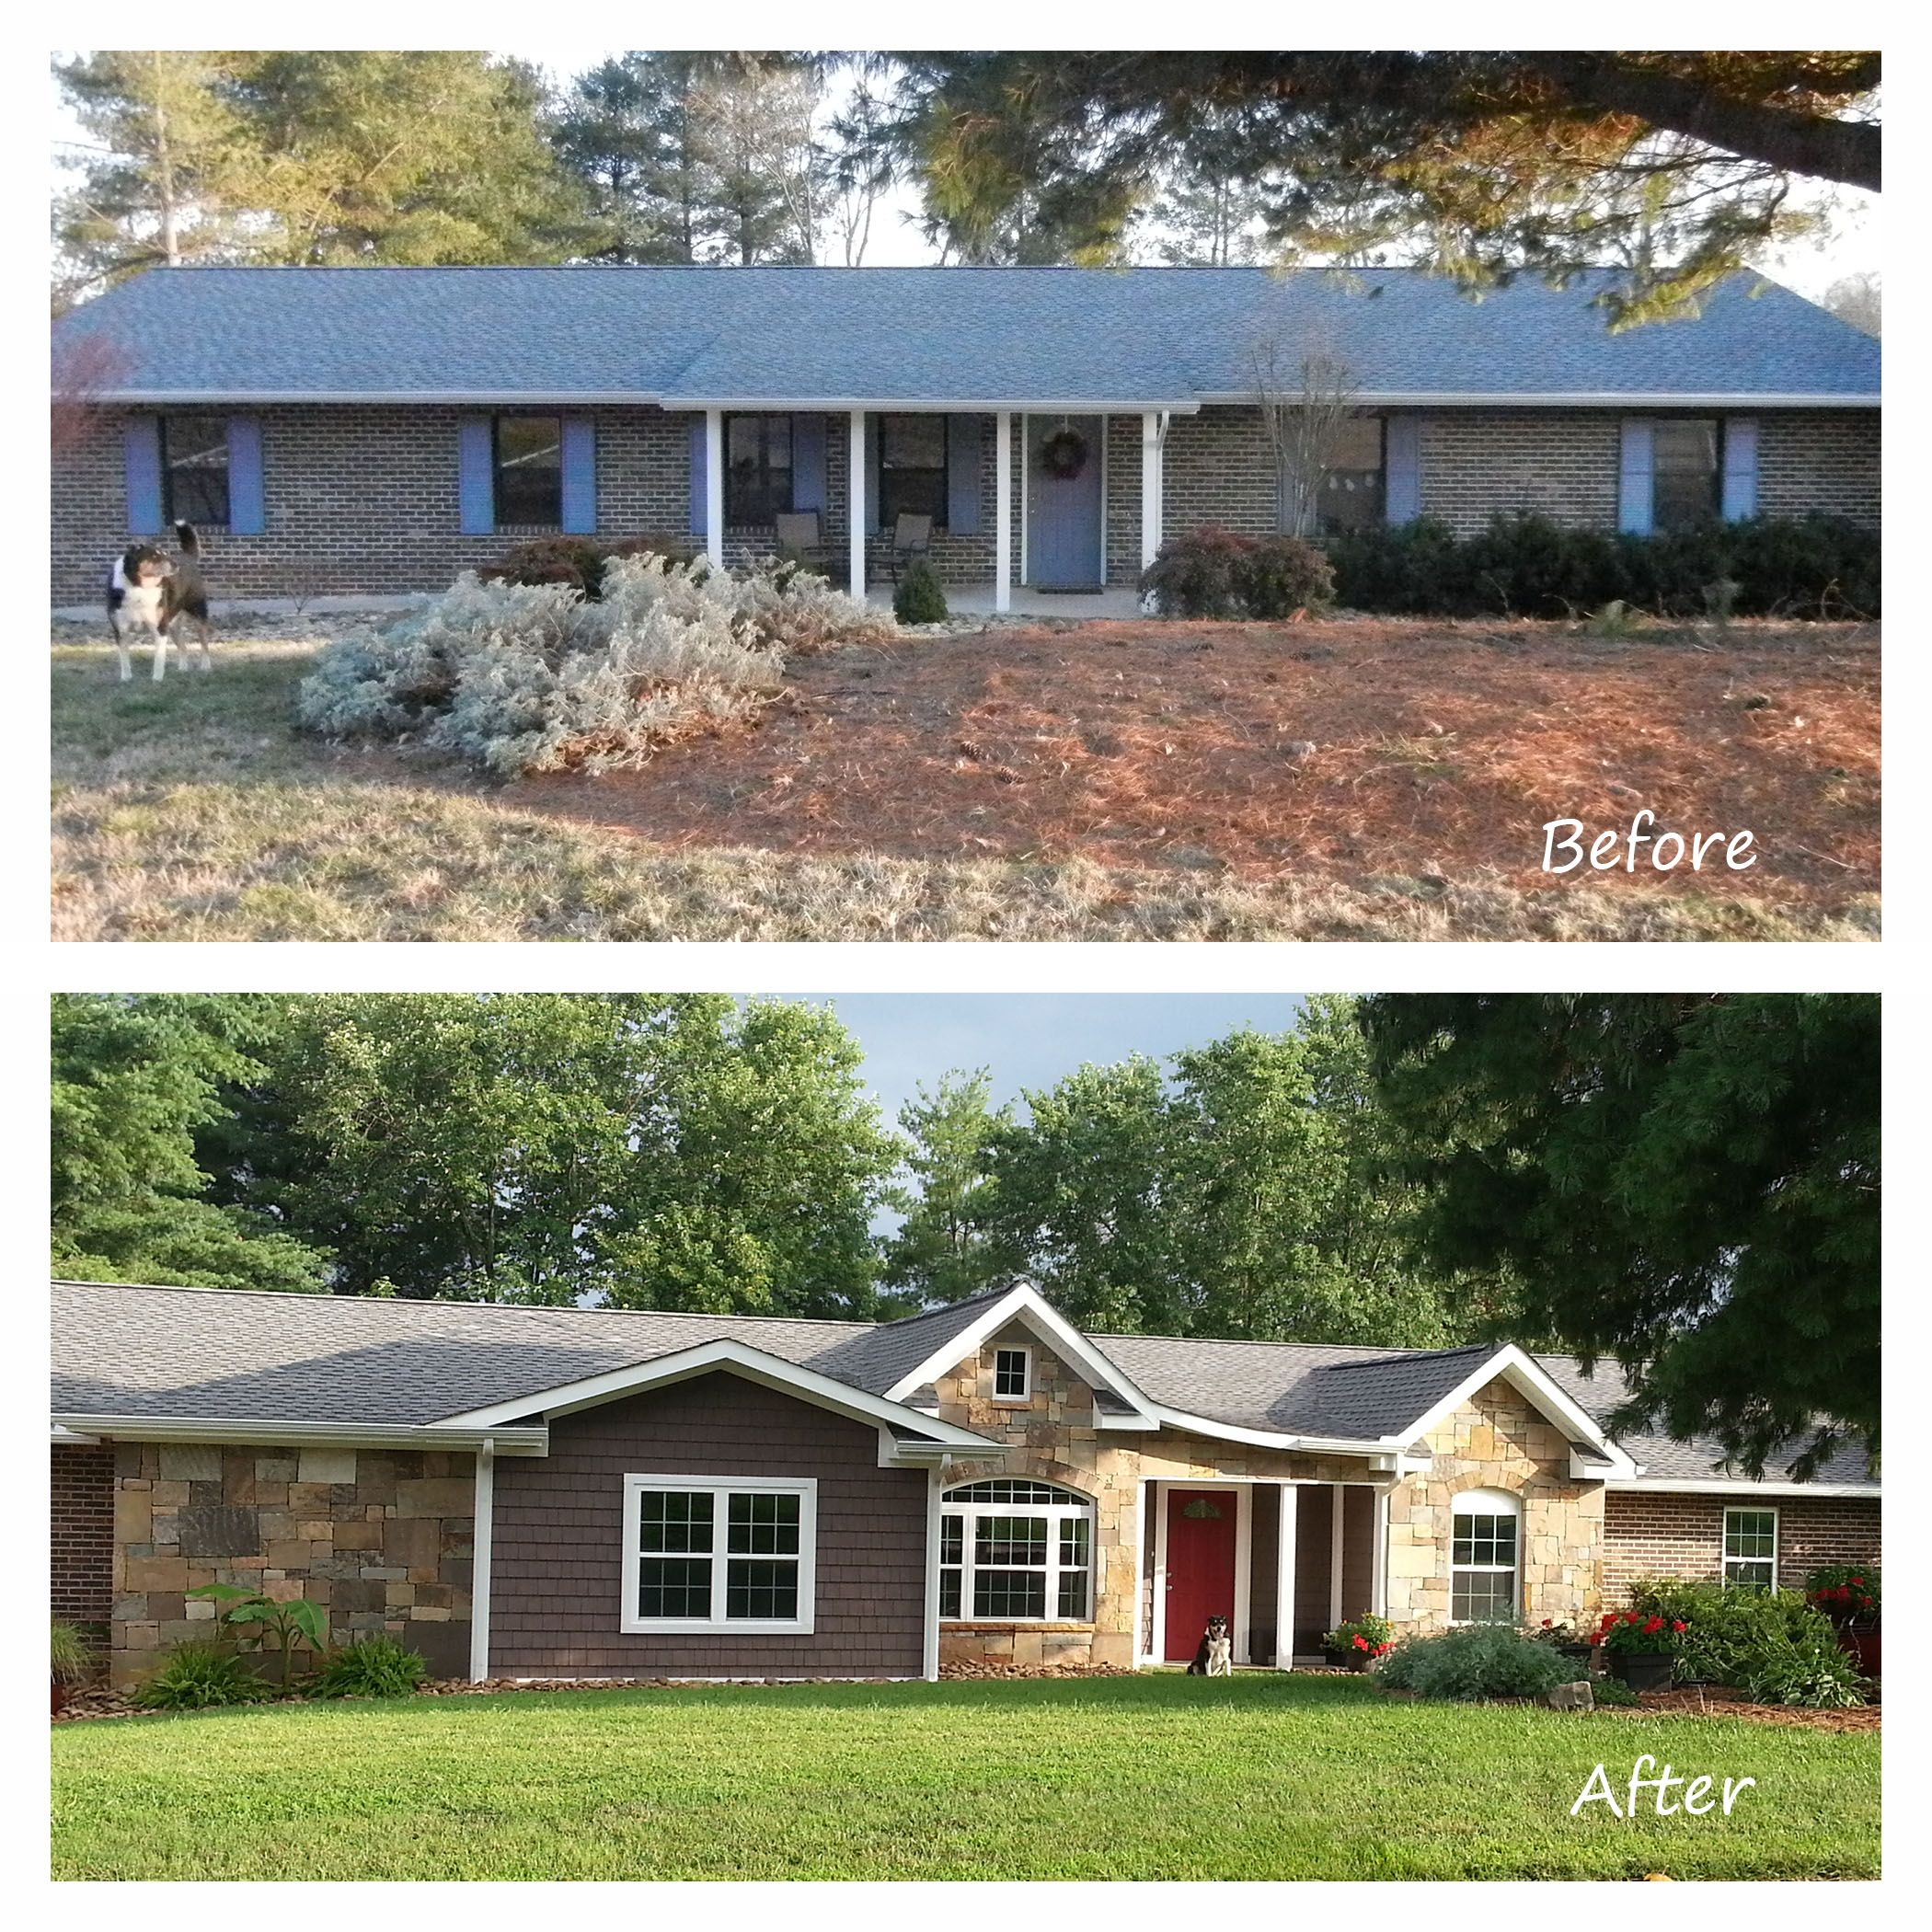 before and after exterior renovation. ranch house remodel with